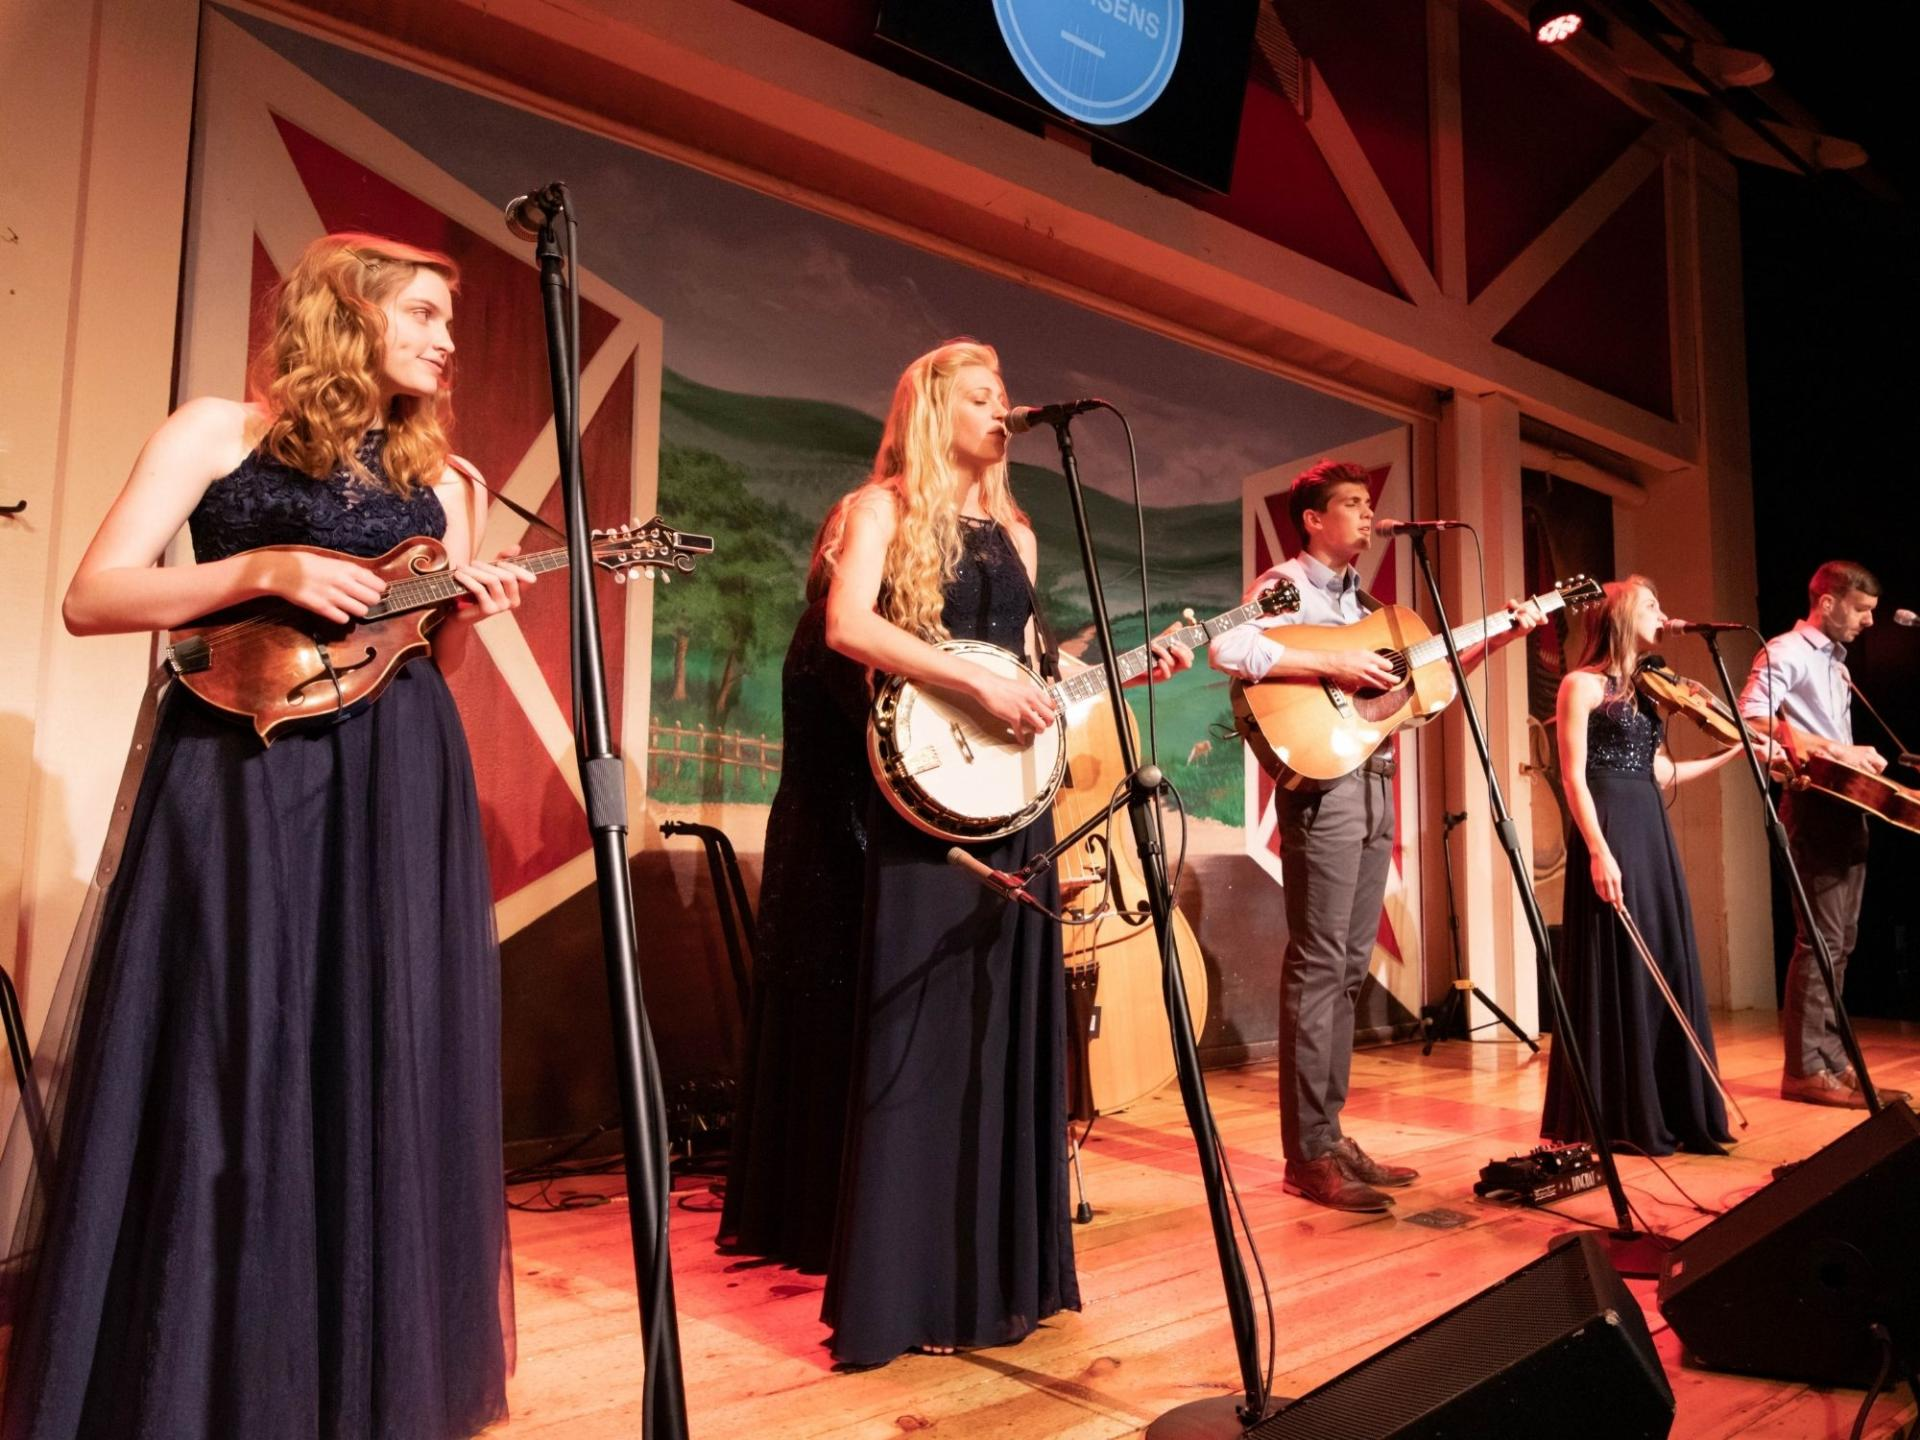 petersen family plays instruments and sings on stage in Branson mo